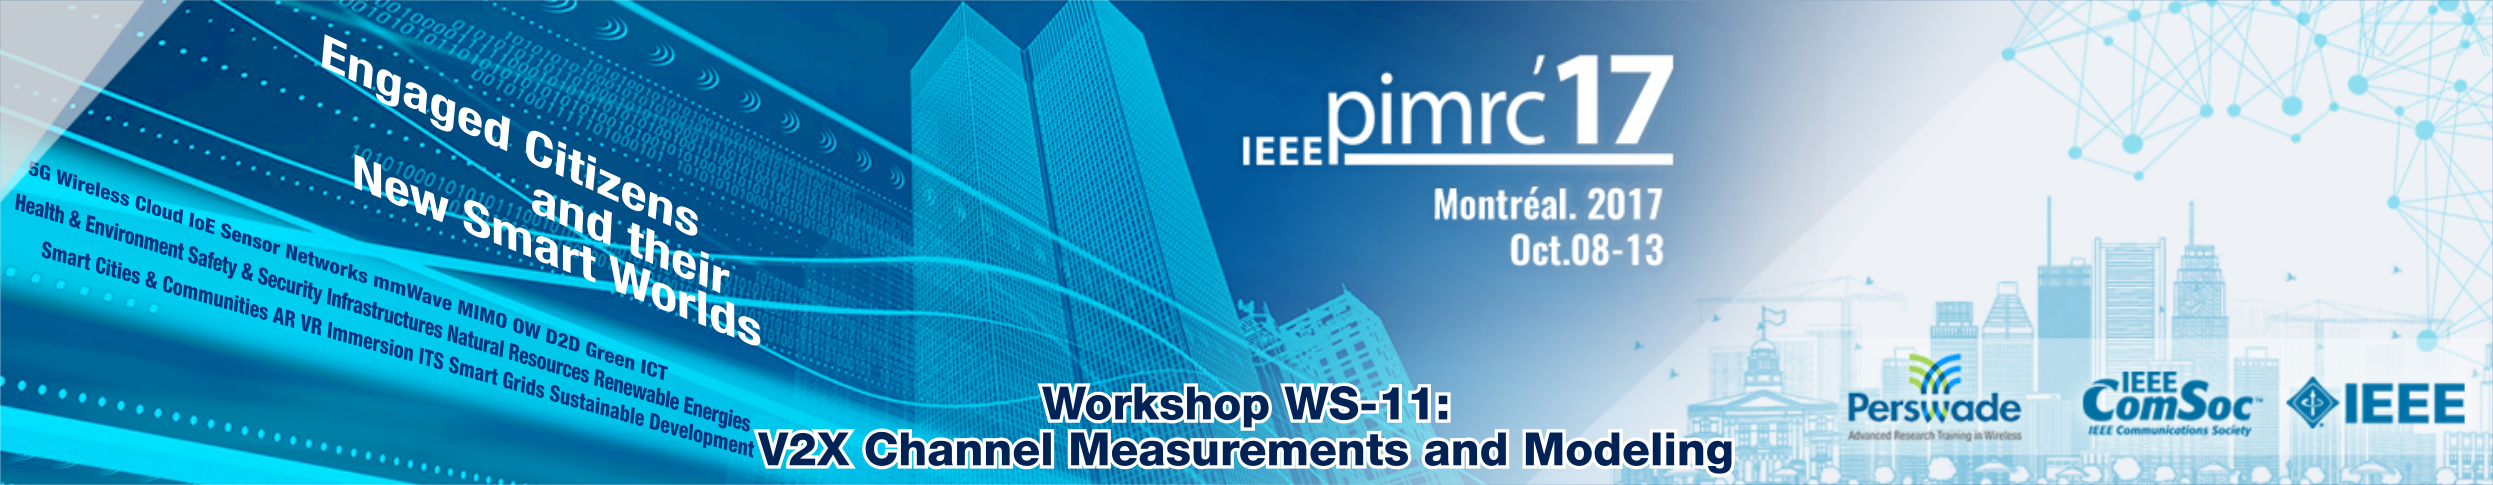 IEEE PIMRC 2017 Workshop WS-11